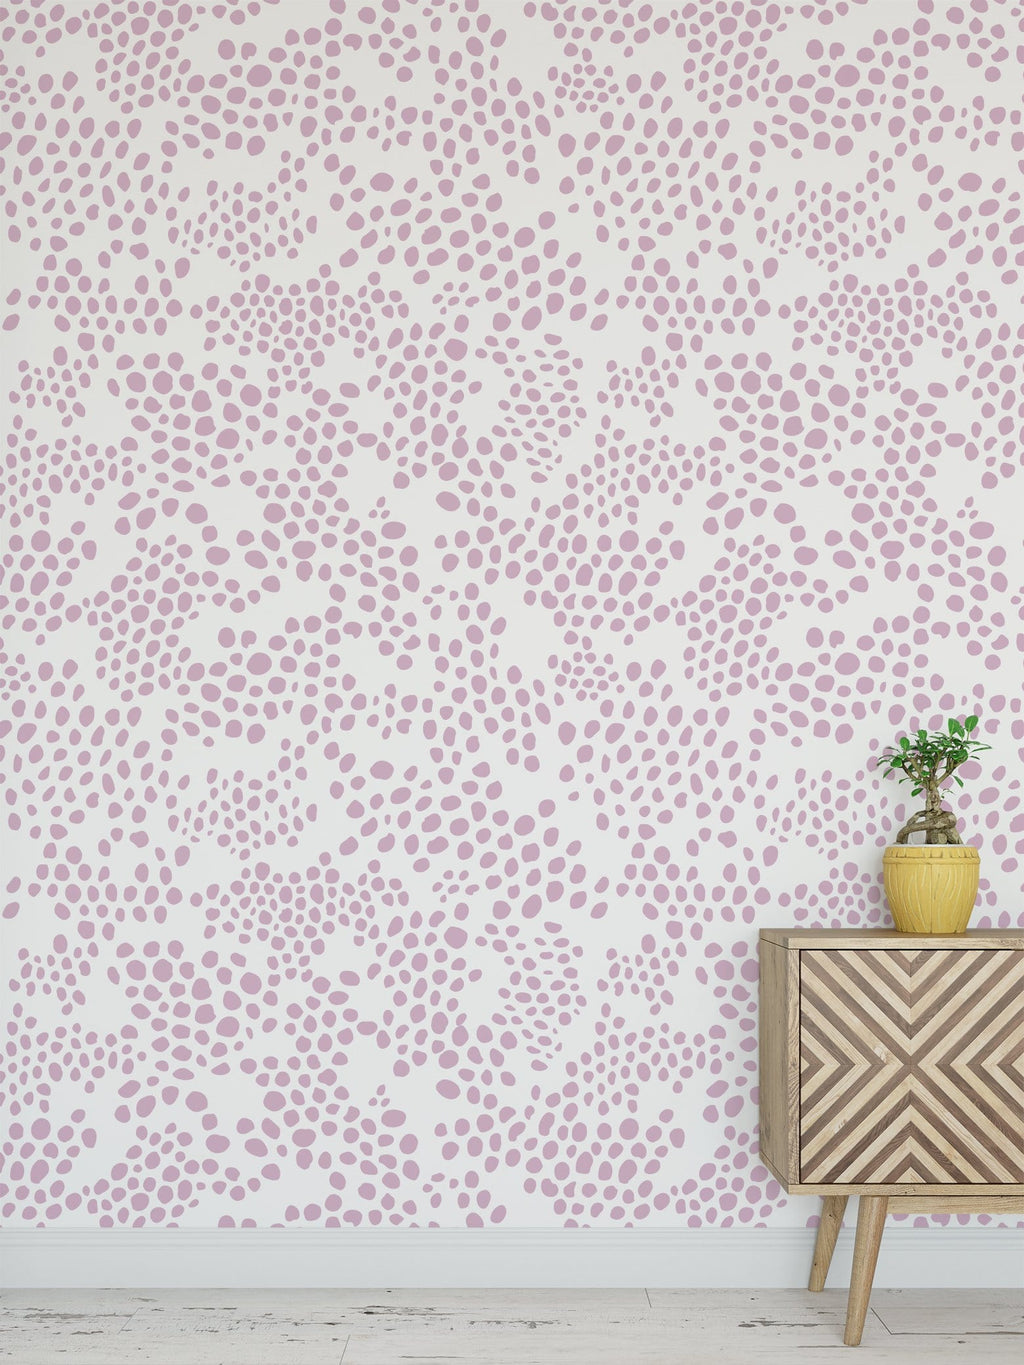 Pink Spot Peel and Stick Wallpaper